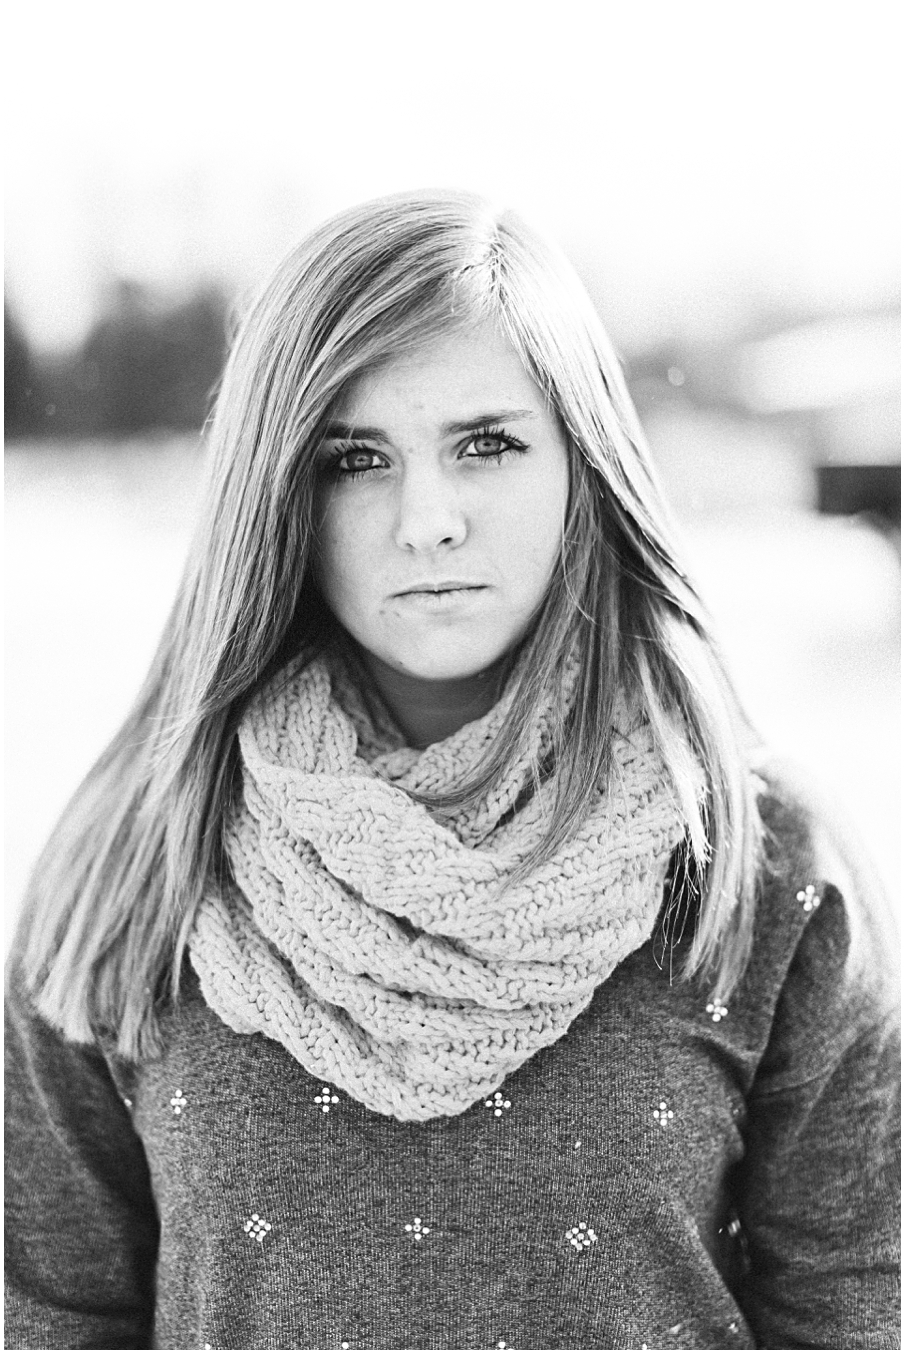 Canon Virginia Photographer Lifestyle Portraits High School Friends Session Woodbridge Bristol Indiana Snow Winter Country